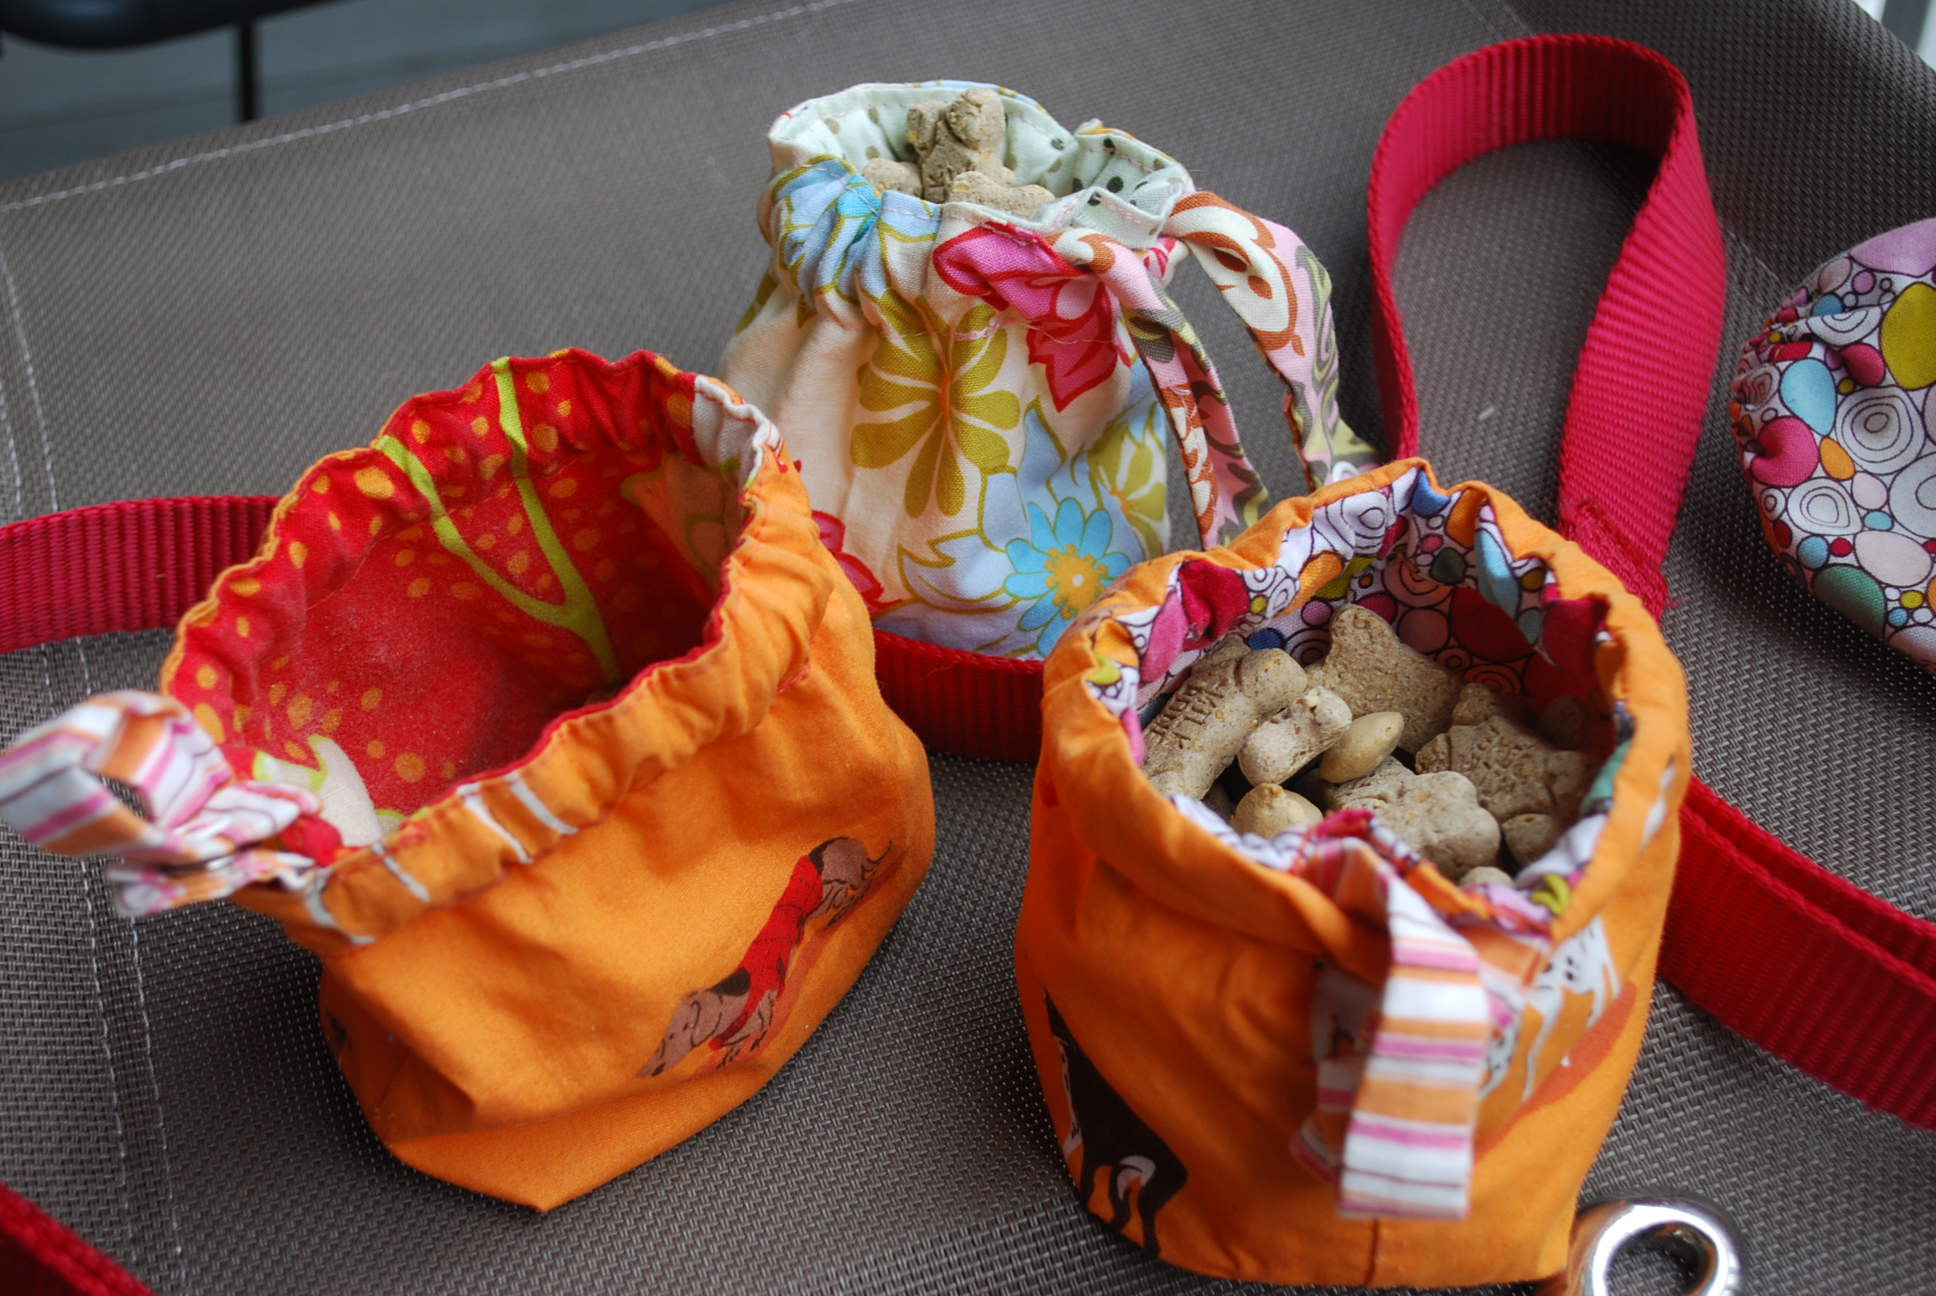 Best ideas about Dog Treat Pouch DIY . Save or Pin Studio Dog Now.